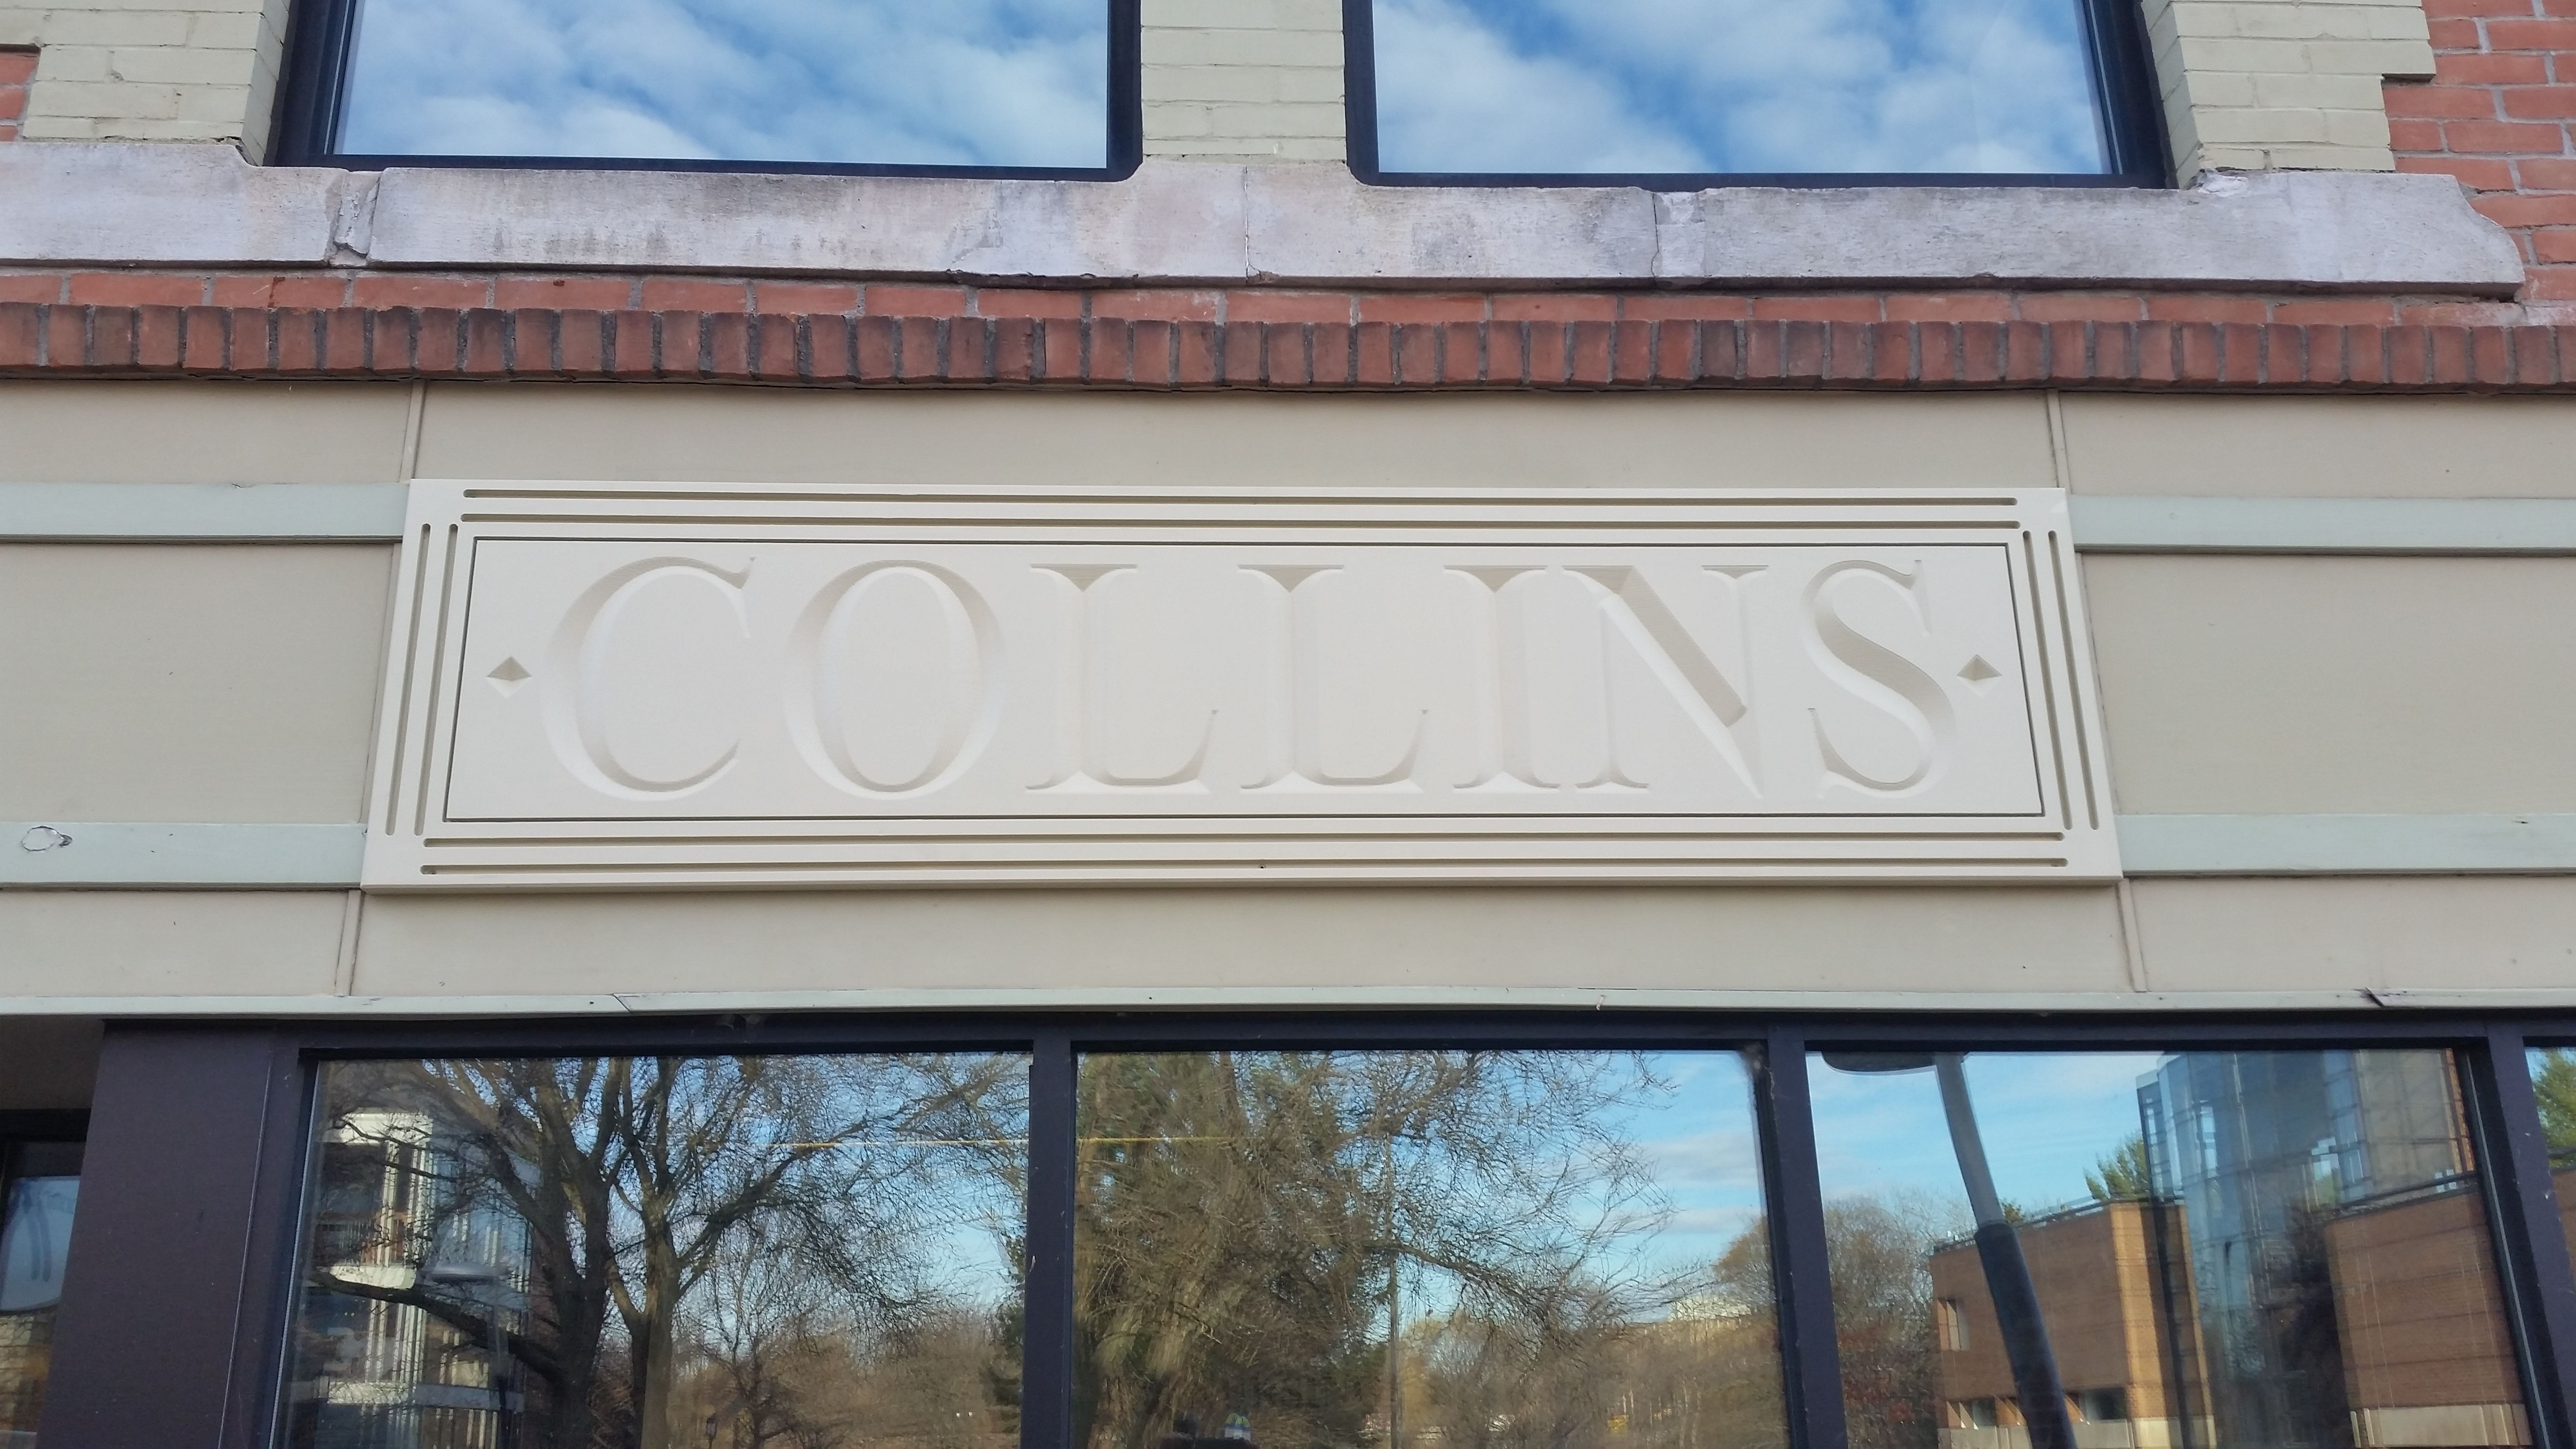 Retro Style CNC Routed Sign